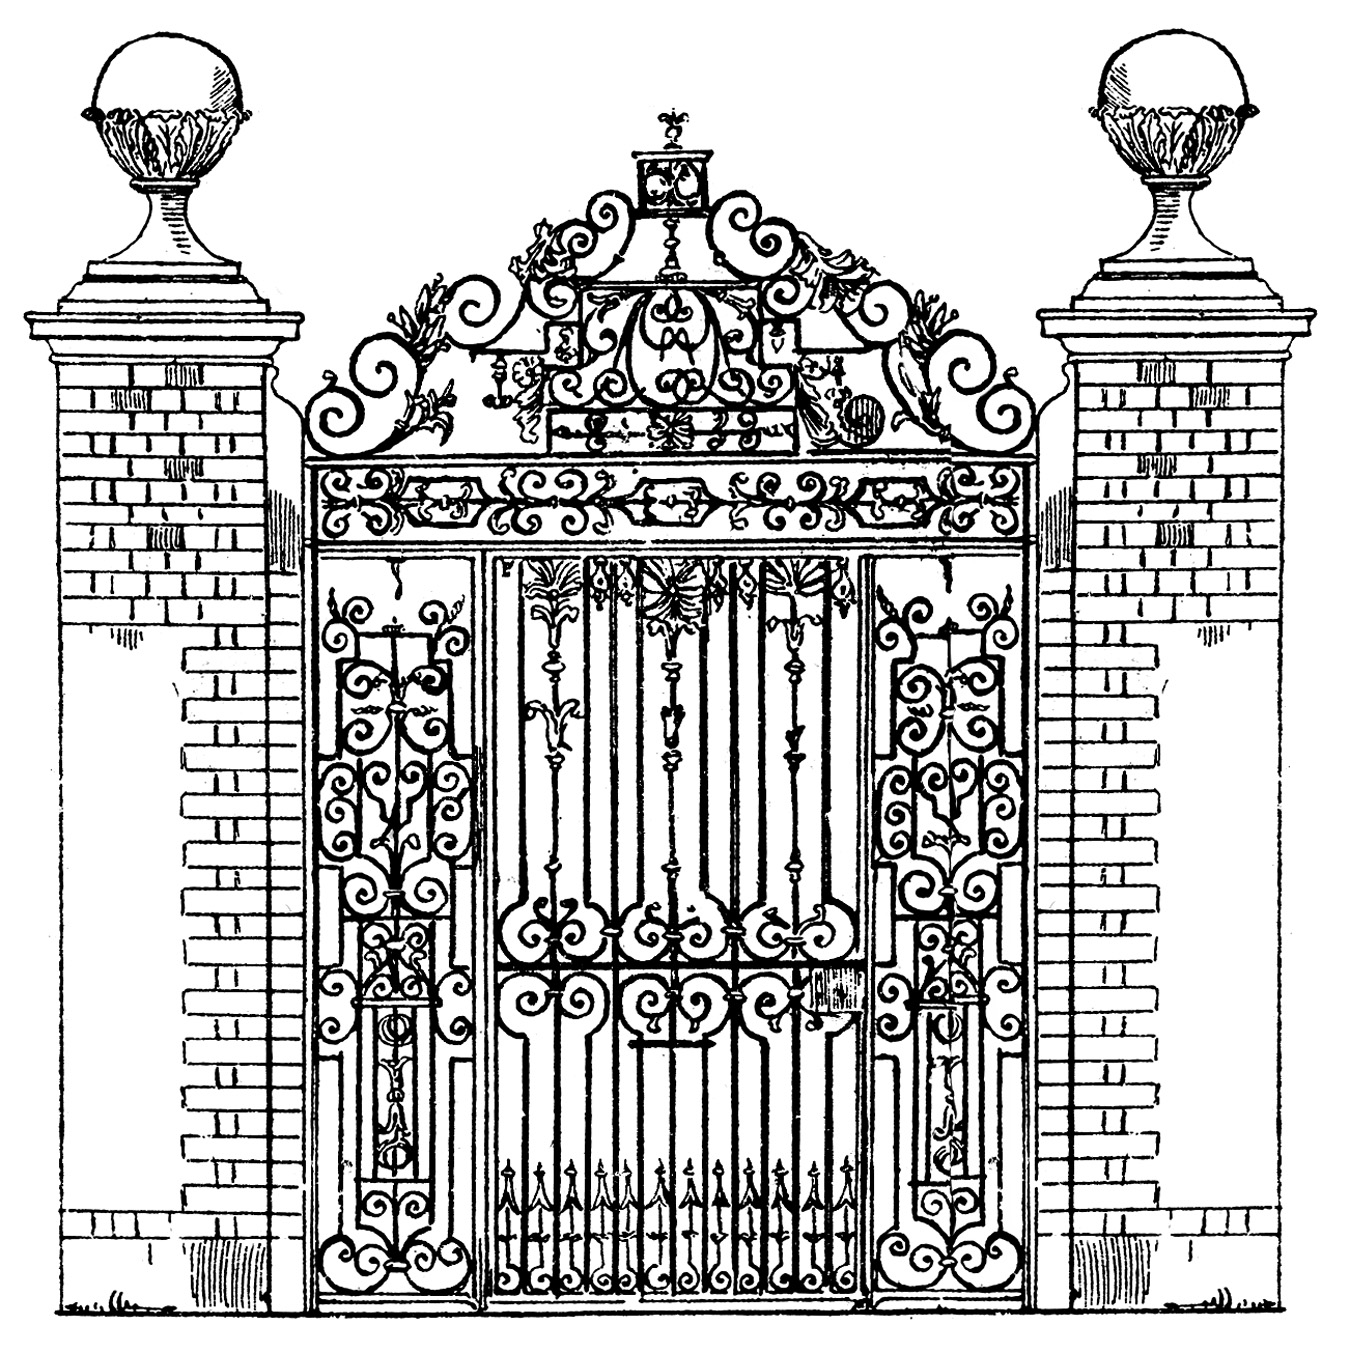 Vintage Clip Art   Ornate Iron Gate   Scrolls   The Graphics Fairy